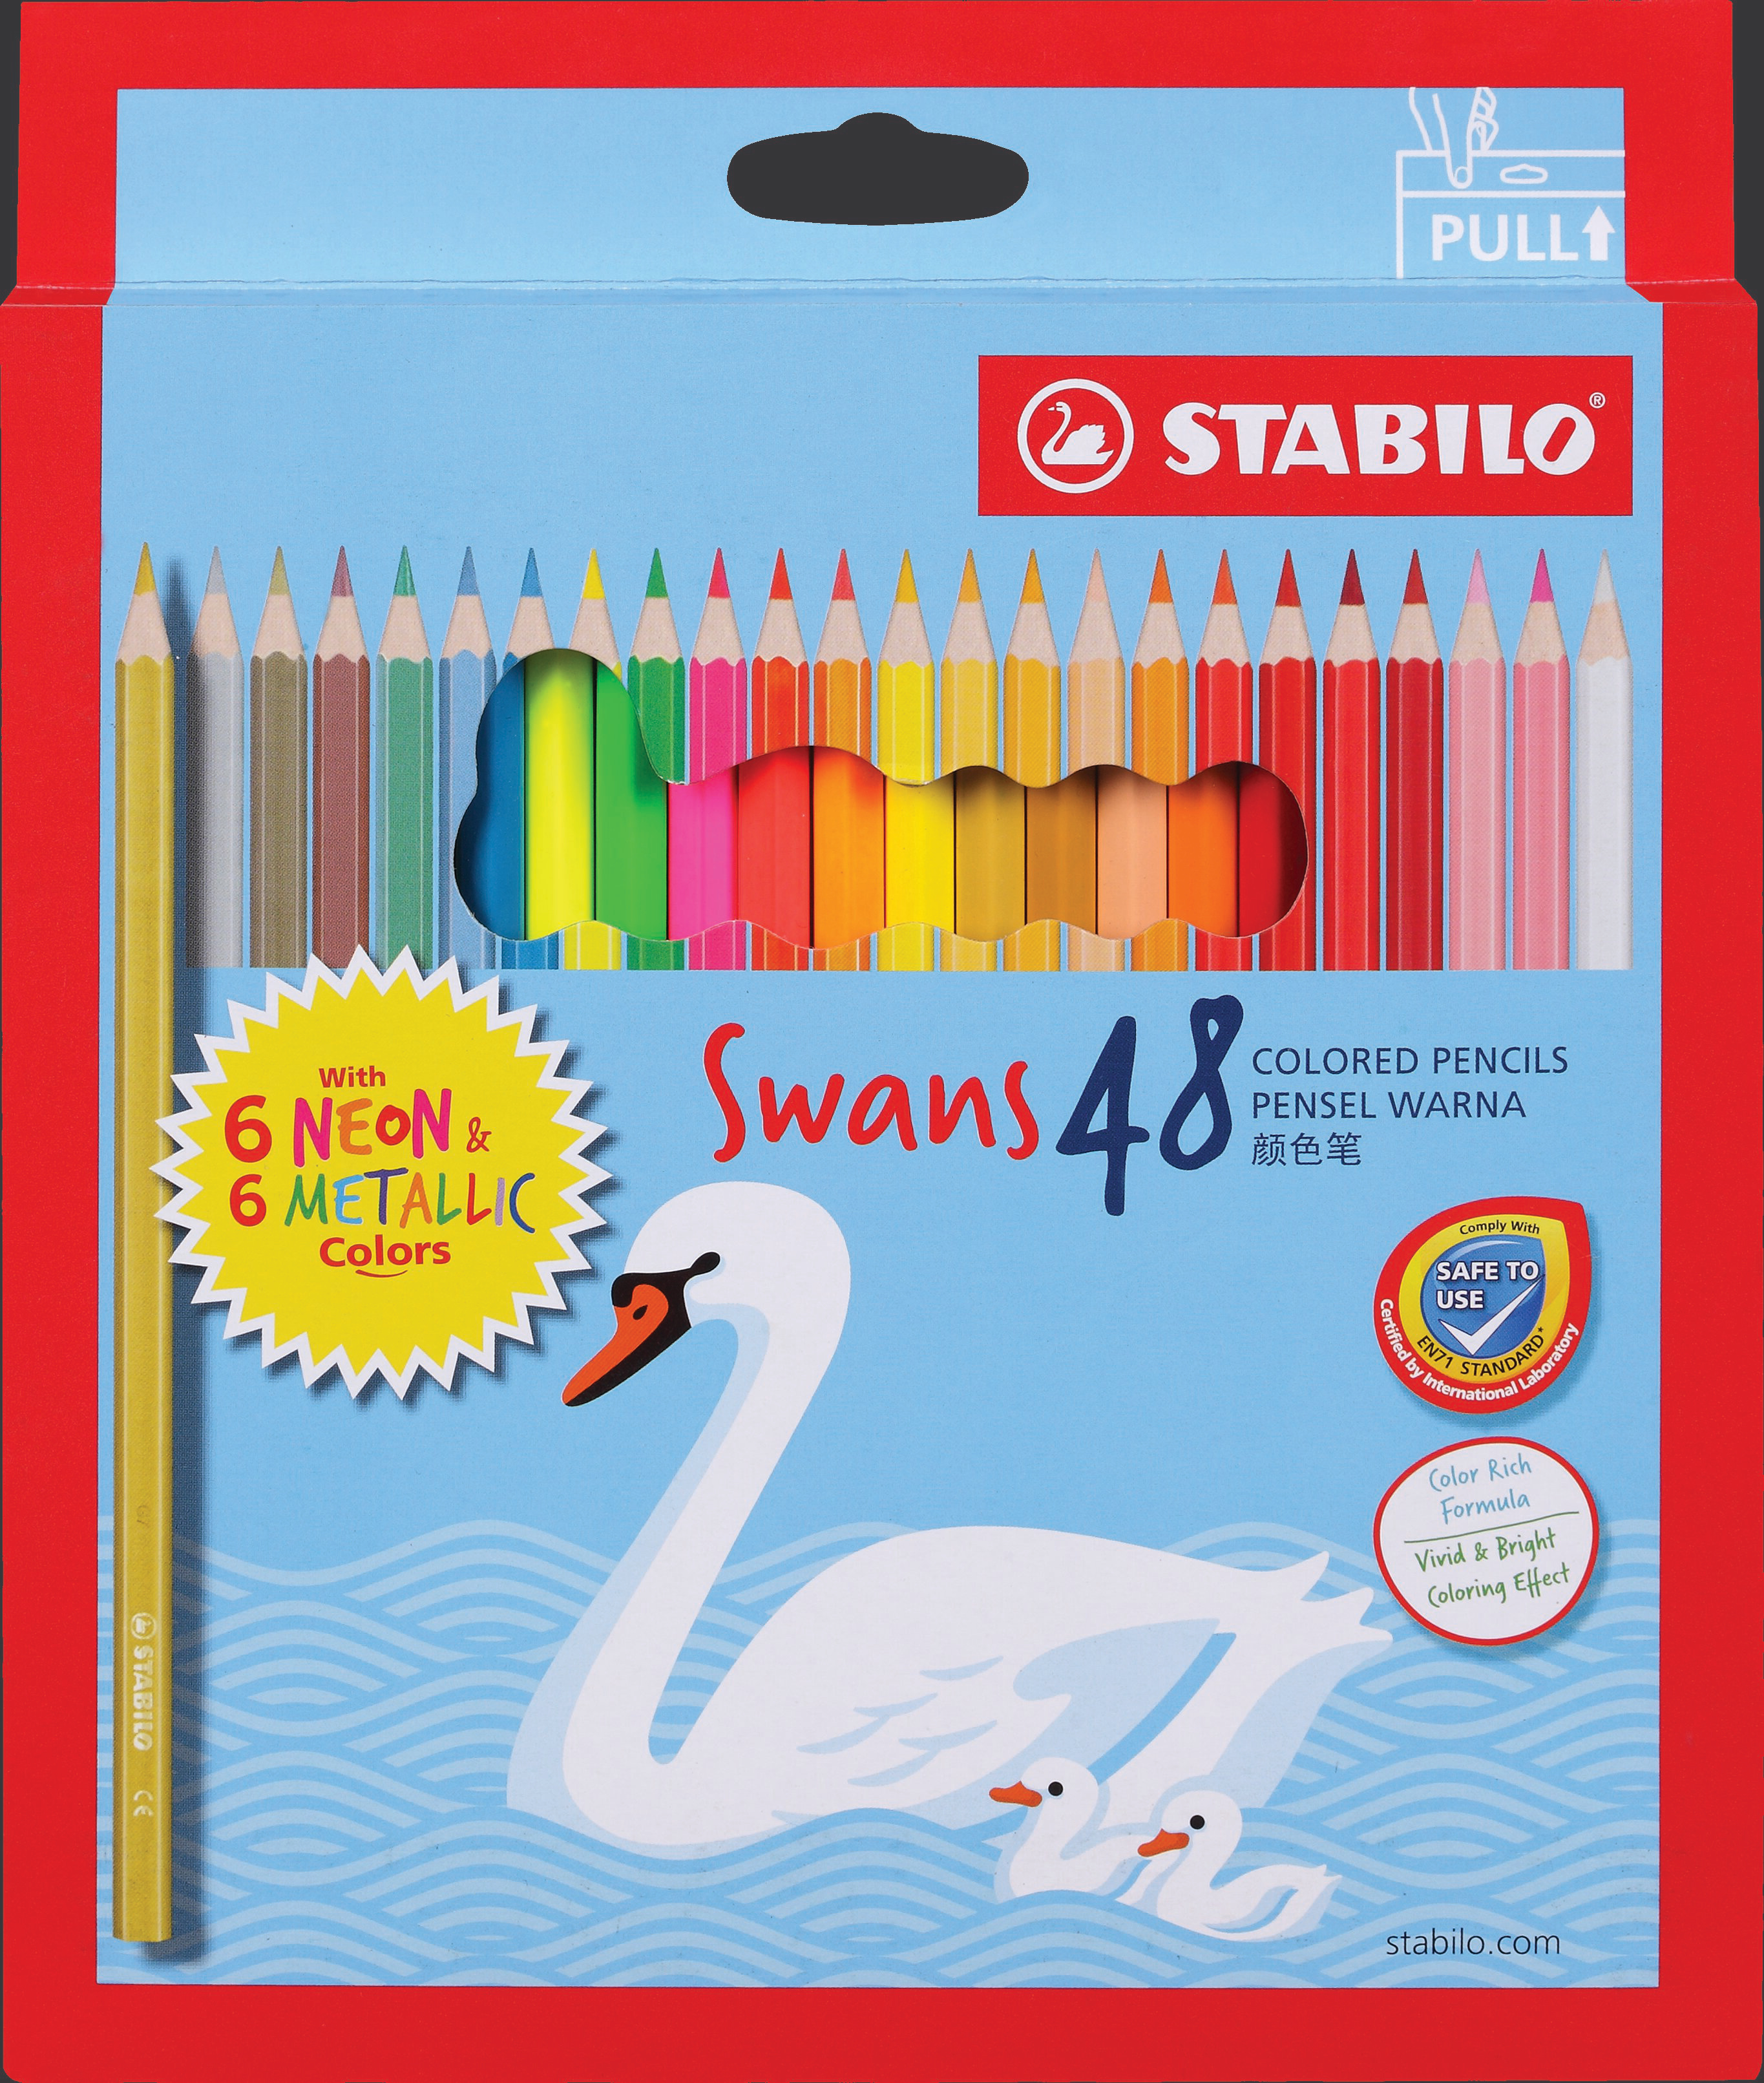 STABILO Swans Colored Pencils with Neon